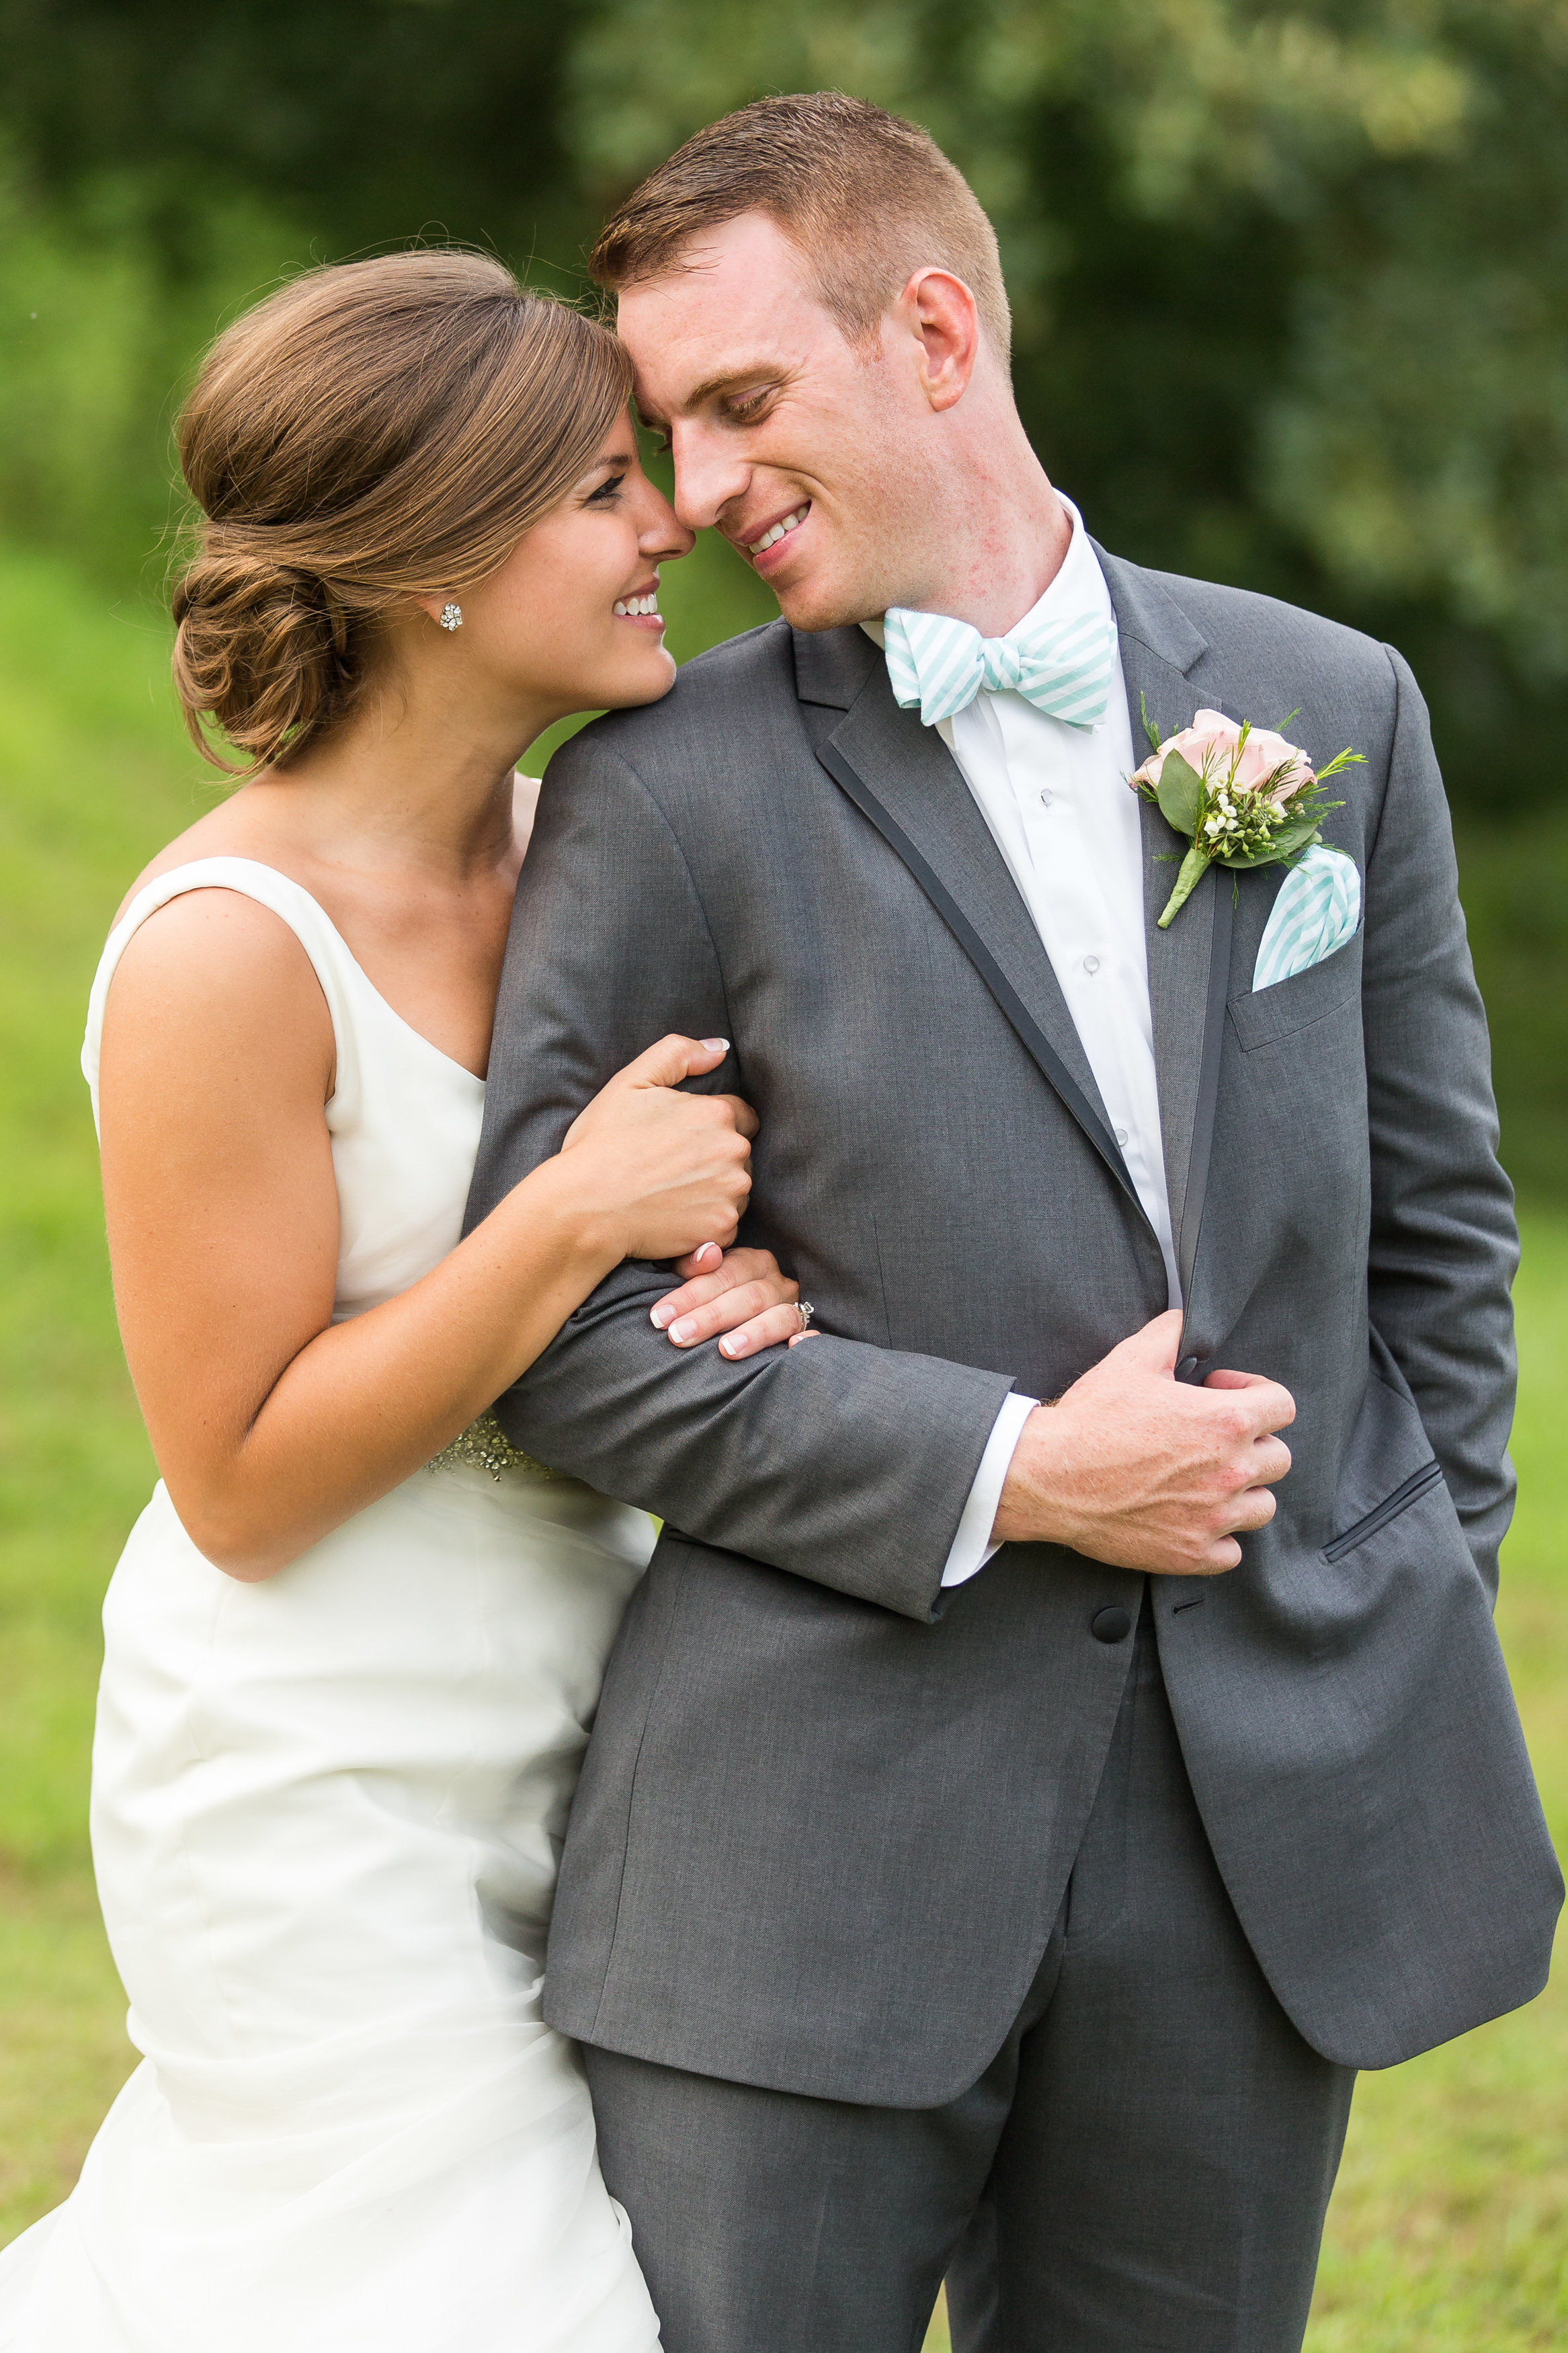 #STLBRIDE St Louis Wedding Photography